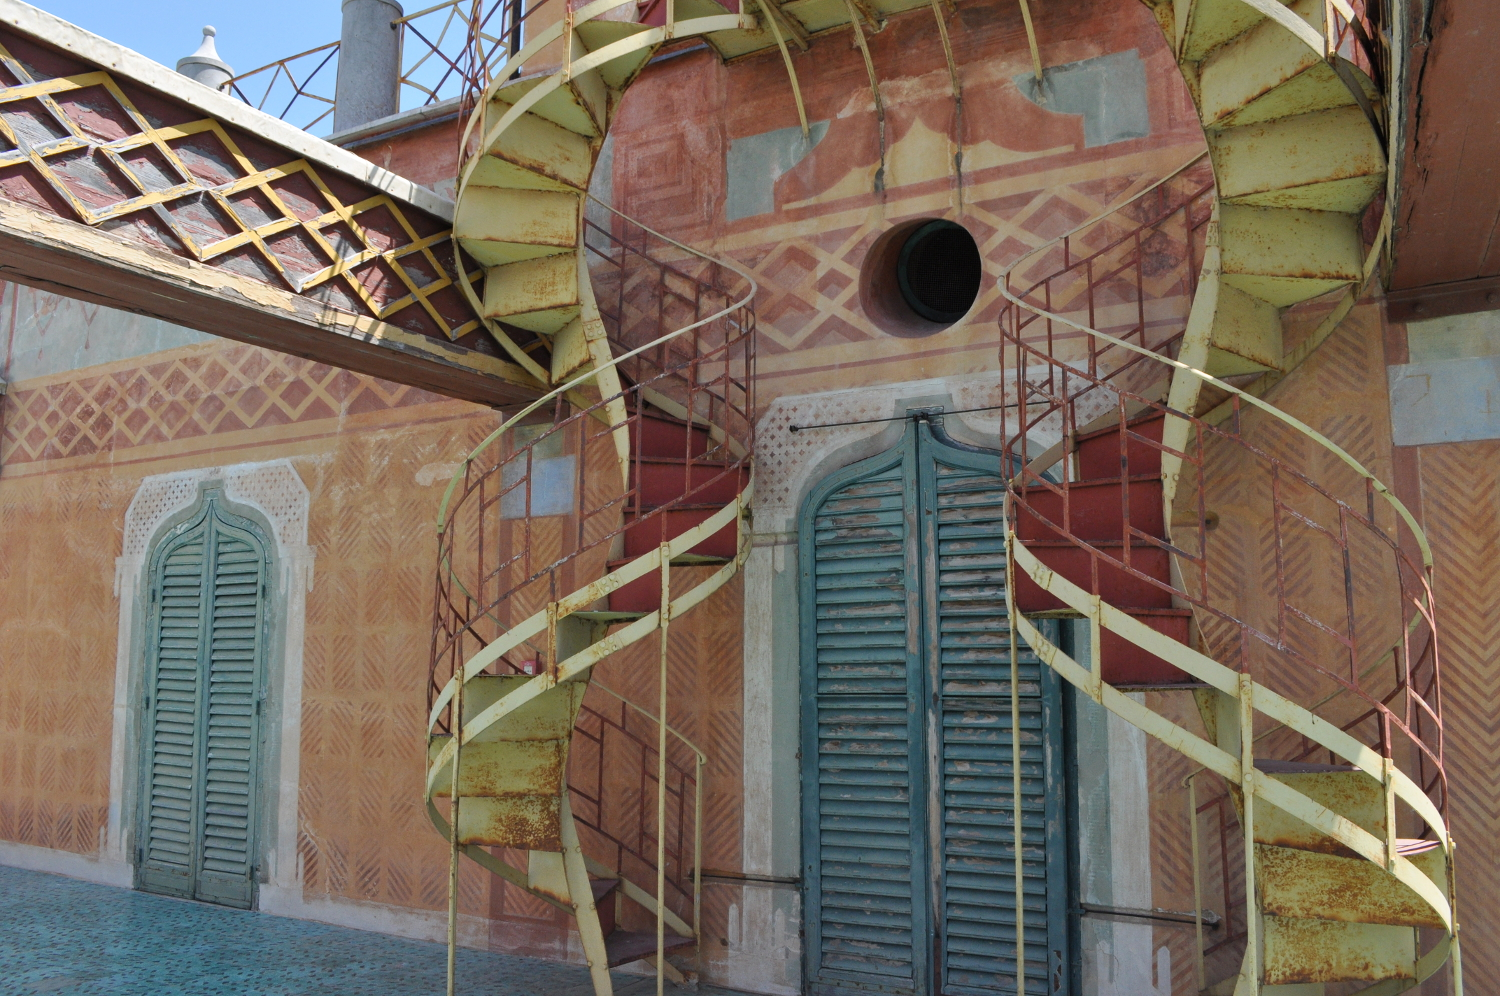 rocaille-blog-palazzina-cinese-palermo-34